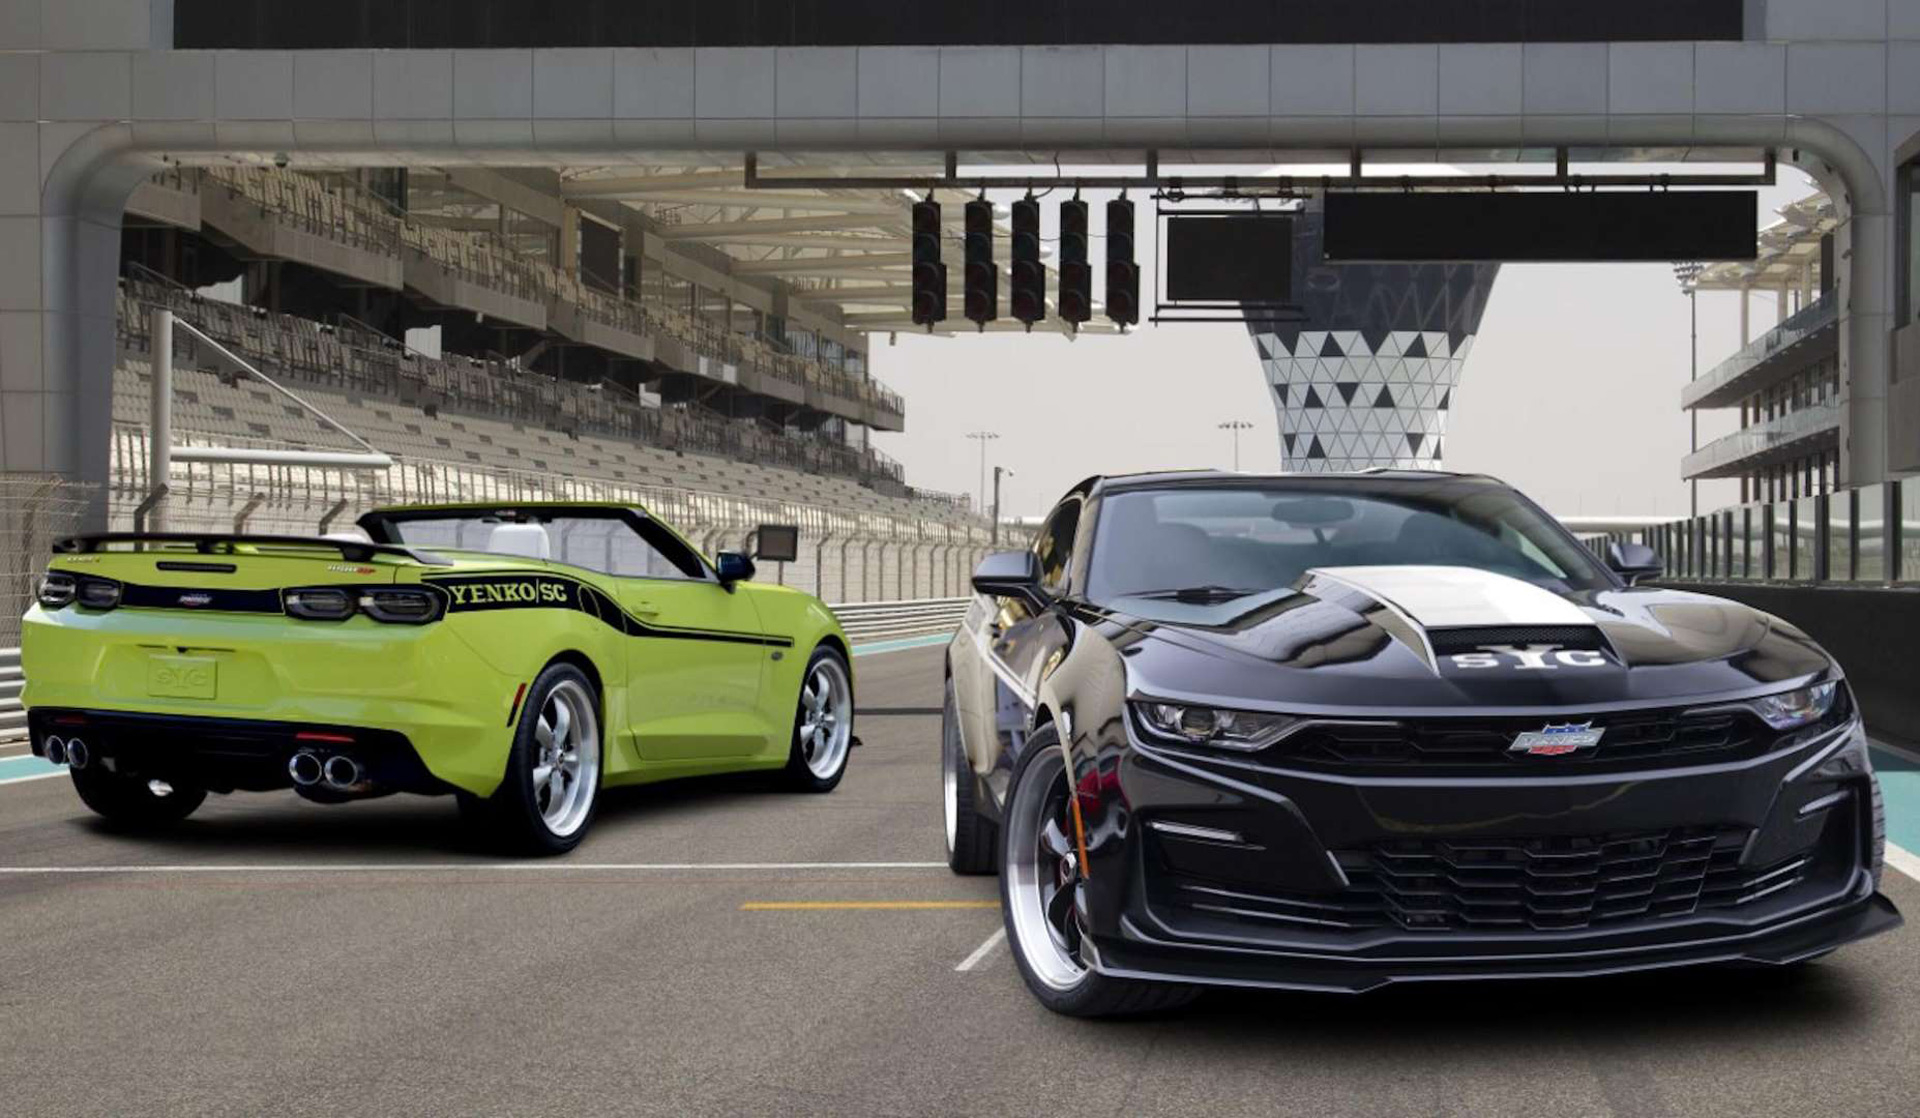 The 1,000-Horsepower Yenko/sc Camaro Is Now Available As A 2022 Chevrolet Camaro 2Ss Build And Price, Exhaust, Mpg